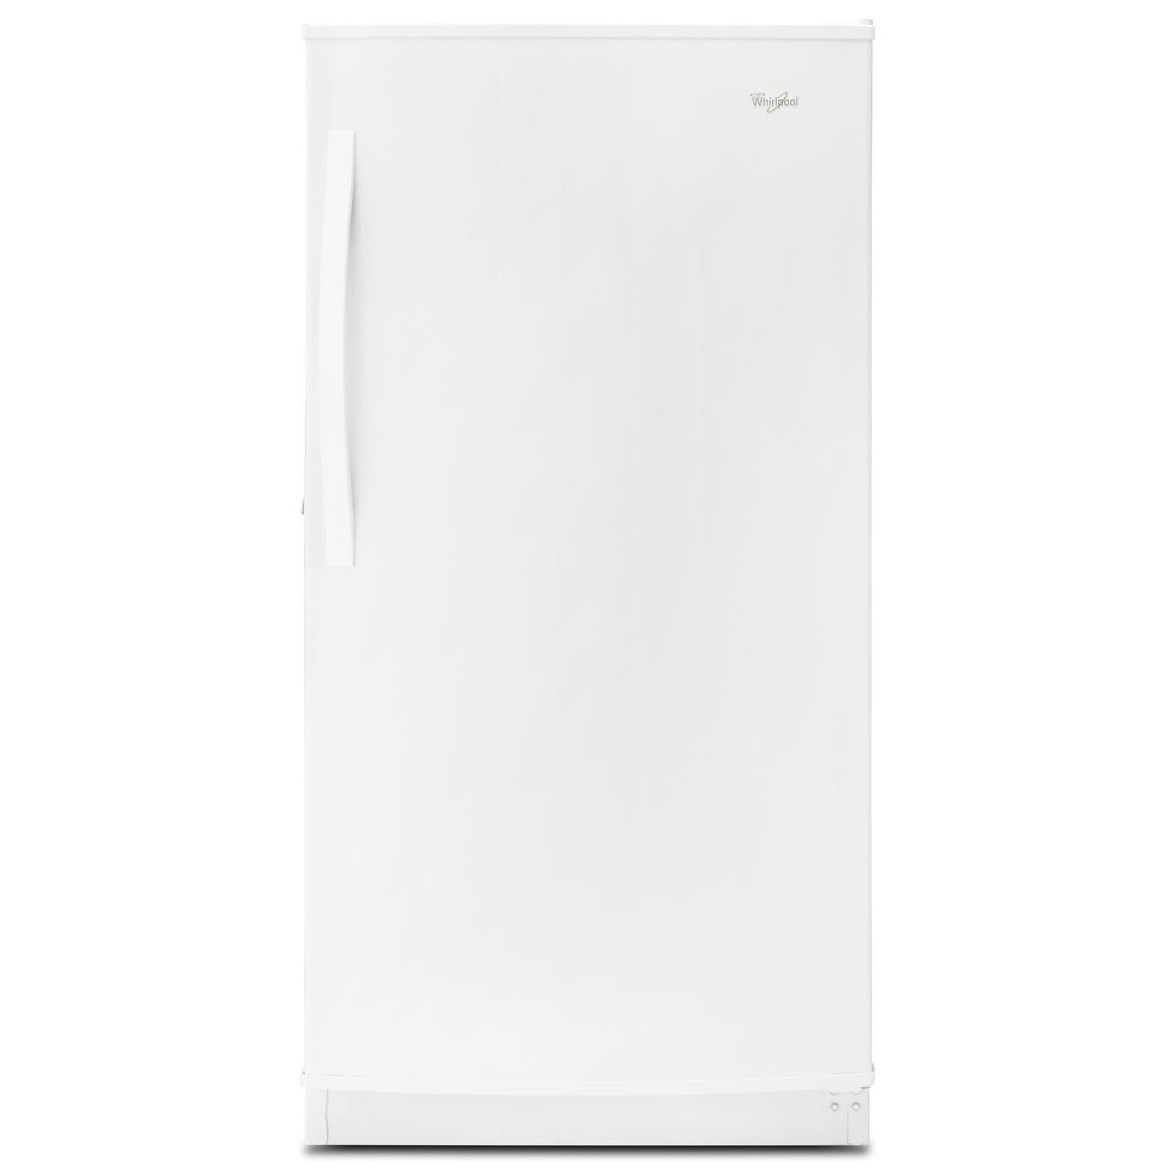 Whirlpool Upright Freezers 16 cu. ft. Upright Freezer with Frost-Free D - Item Number: WZF57R16FW